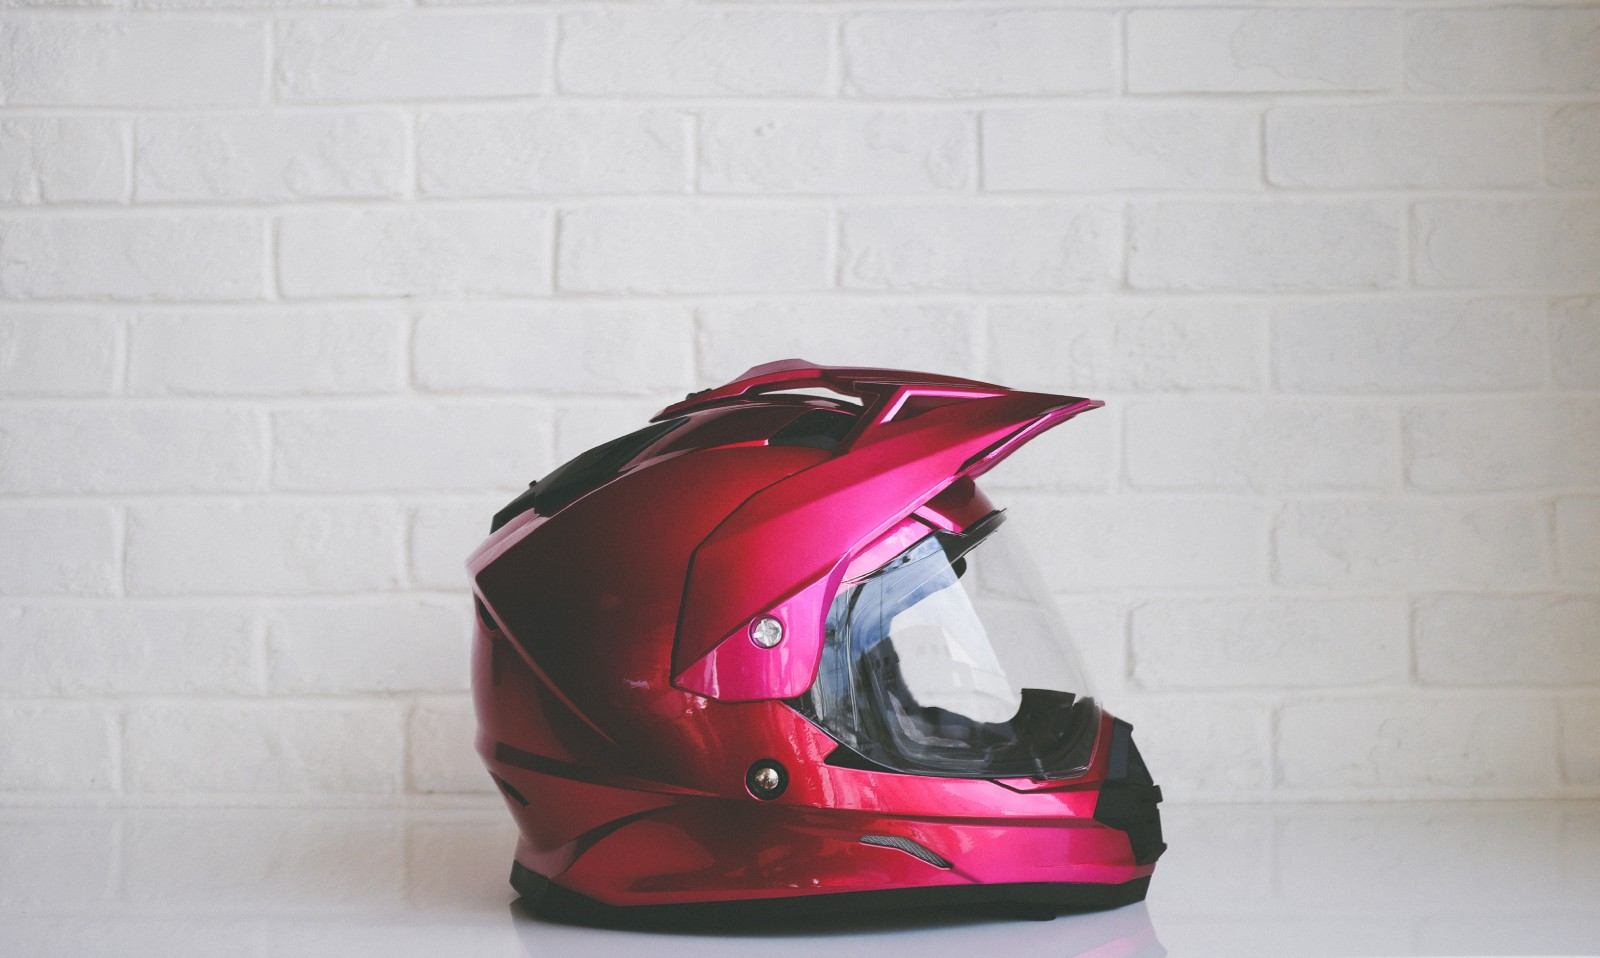 The Anatomy Of A Bike Helmet Helmet Saves